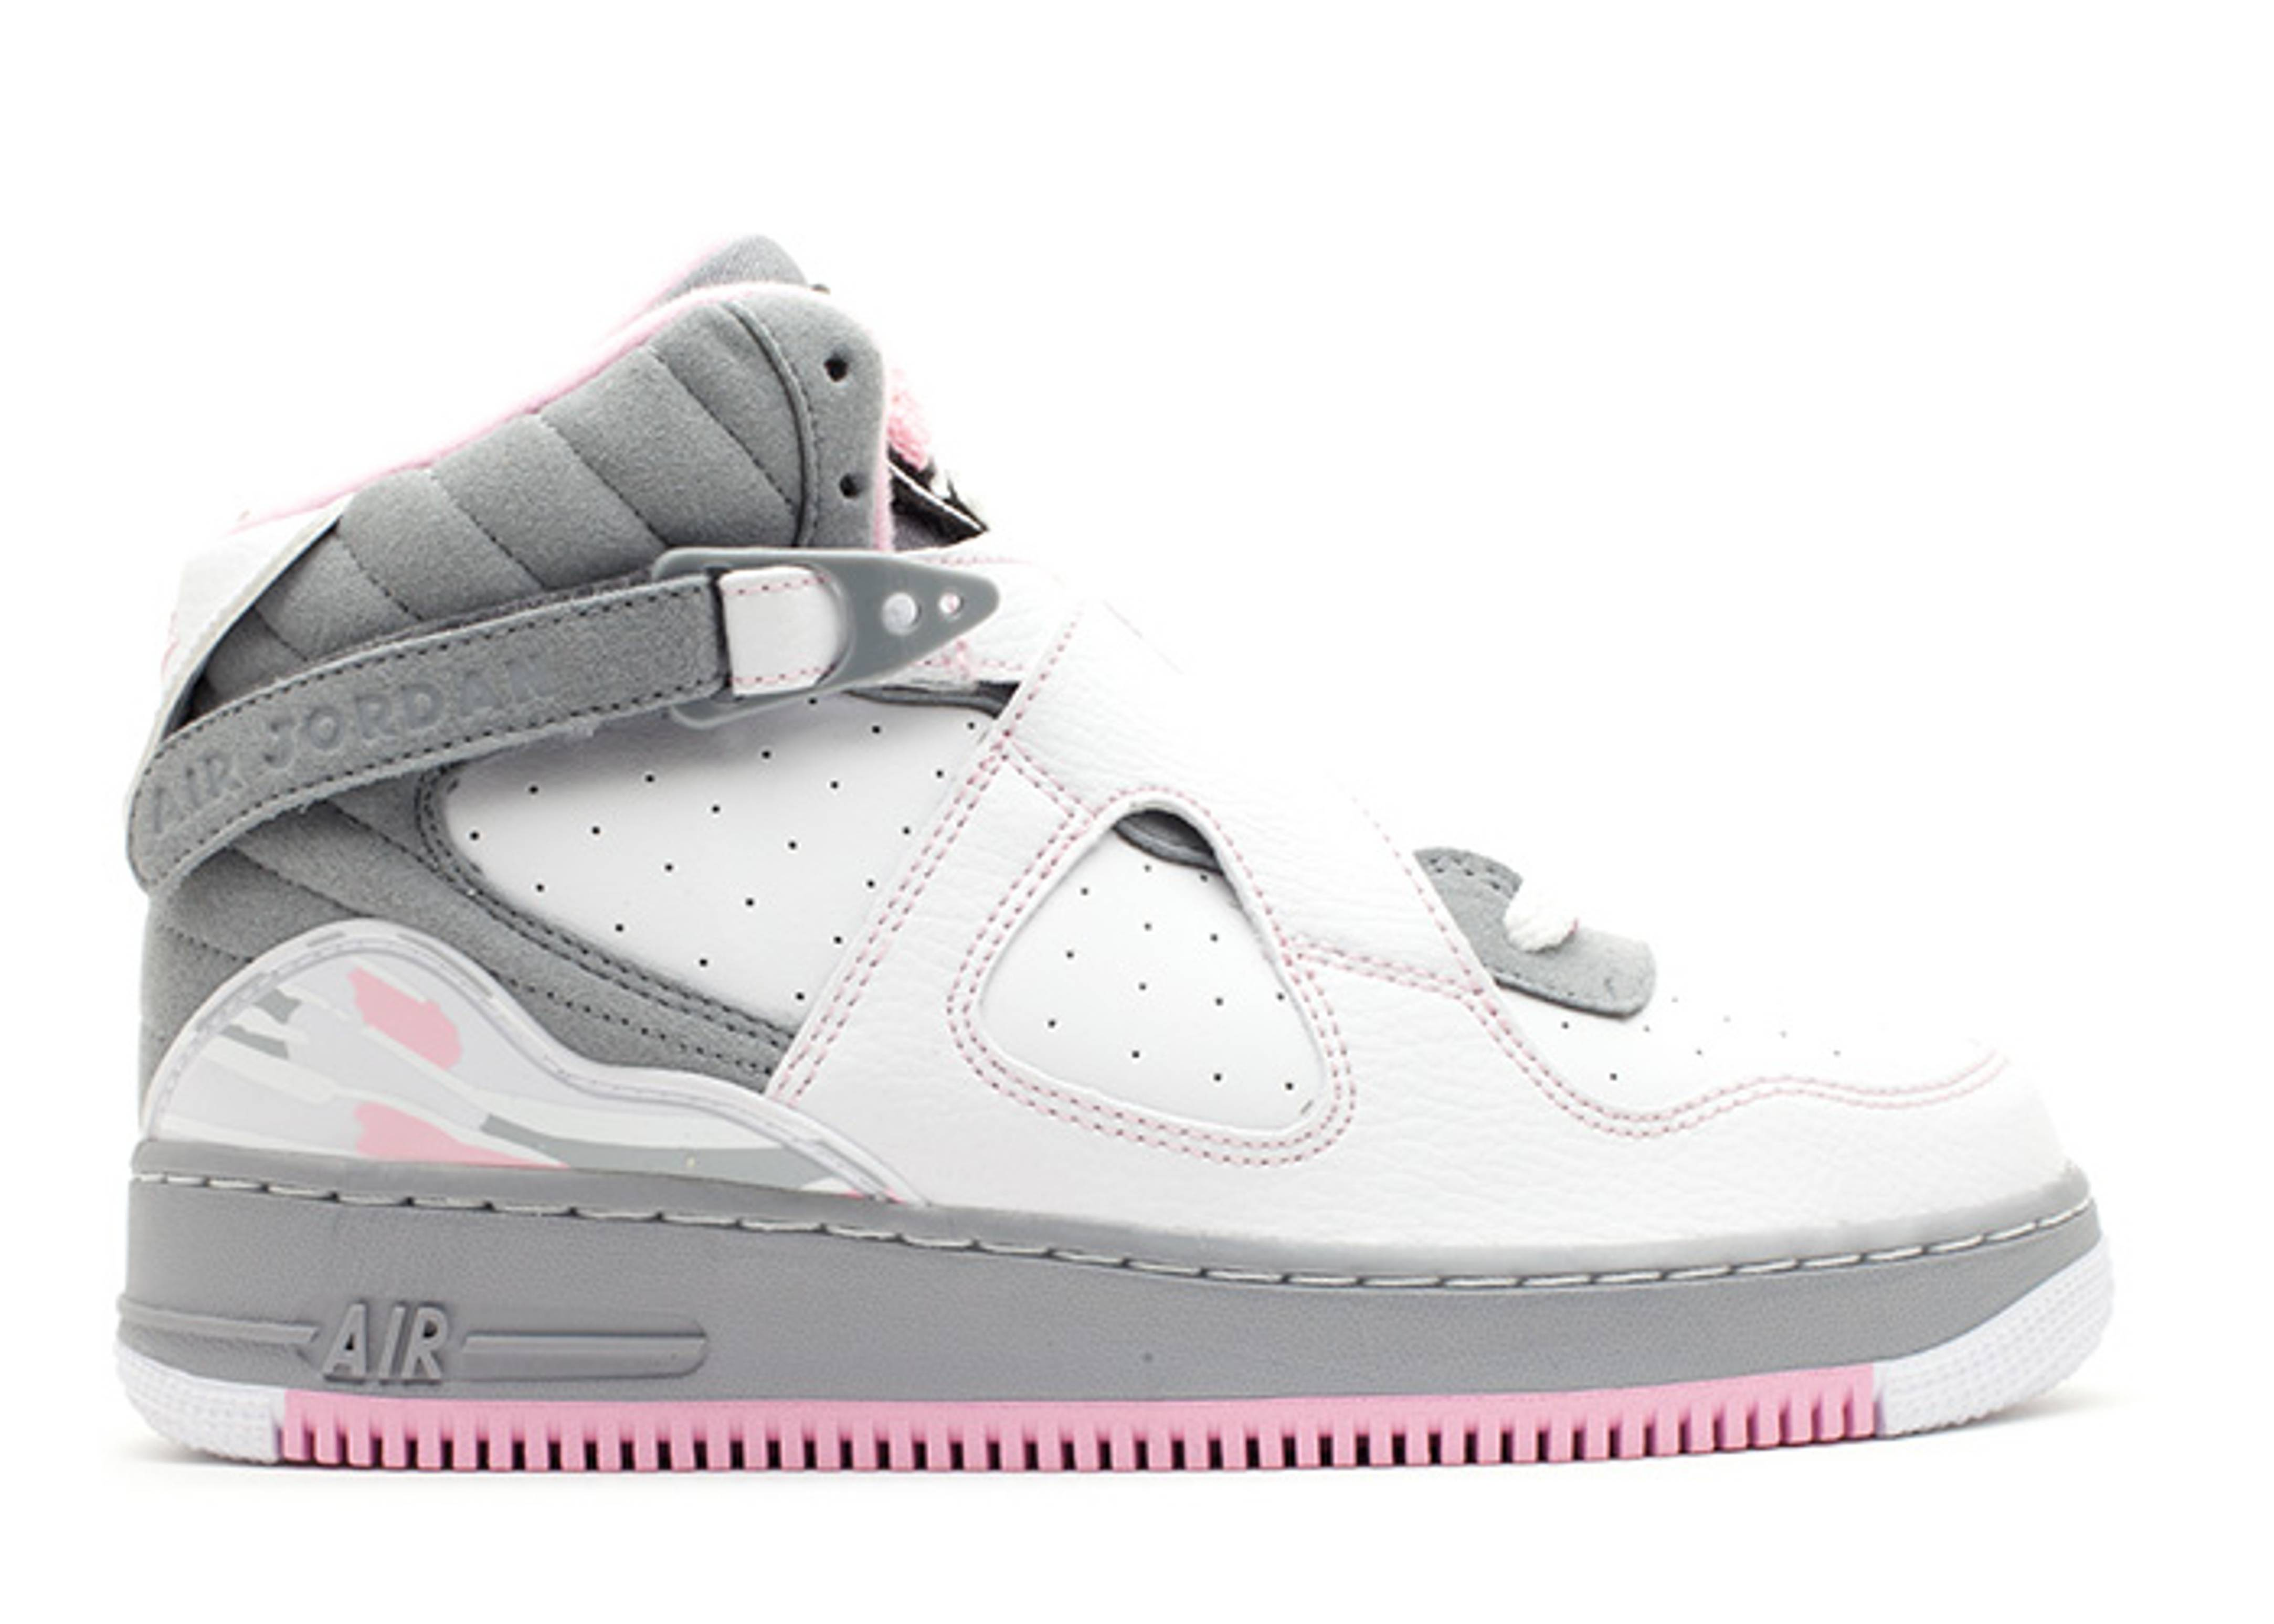 sale retailer b0b59 5aee4 Ajf 8 (gs) - Air Jordan - 385067 103 - white perfect pink-stealth ...